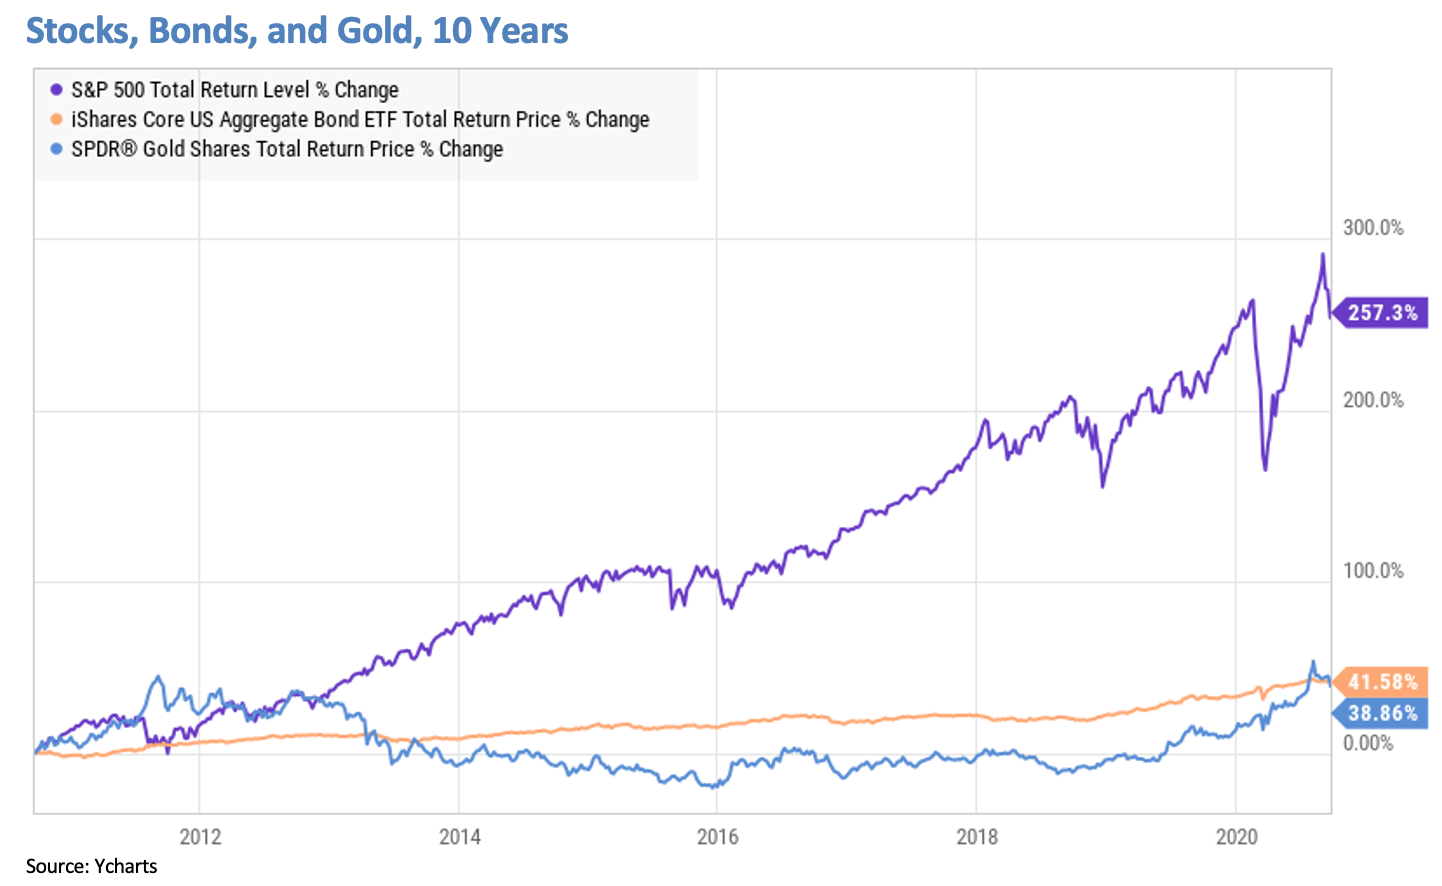 Stocks, Bonds and Gold 10Y